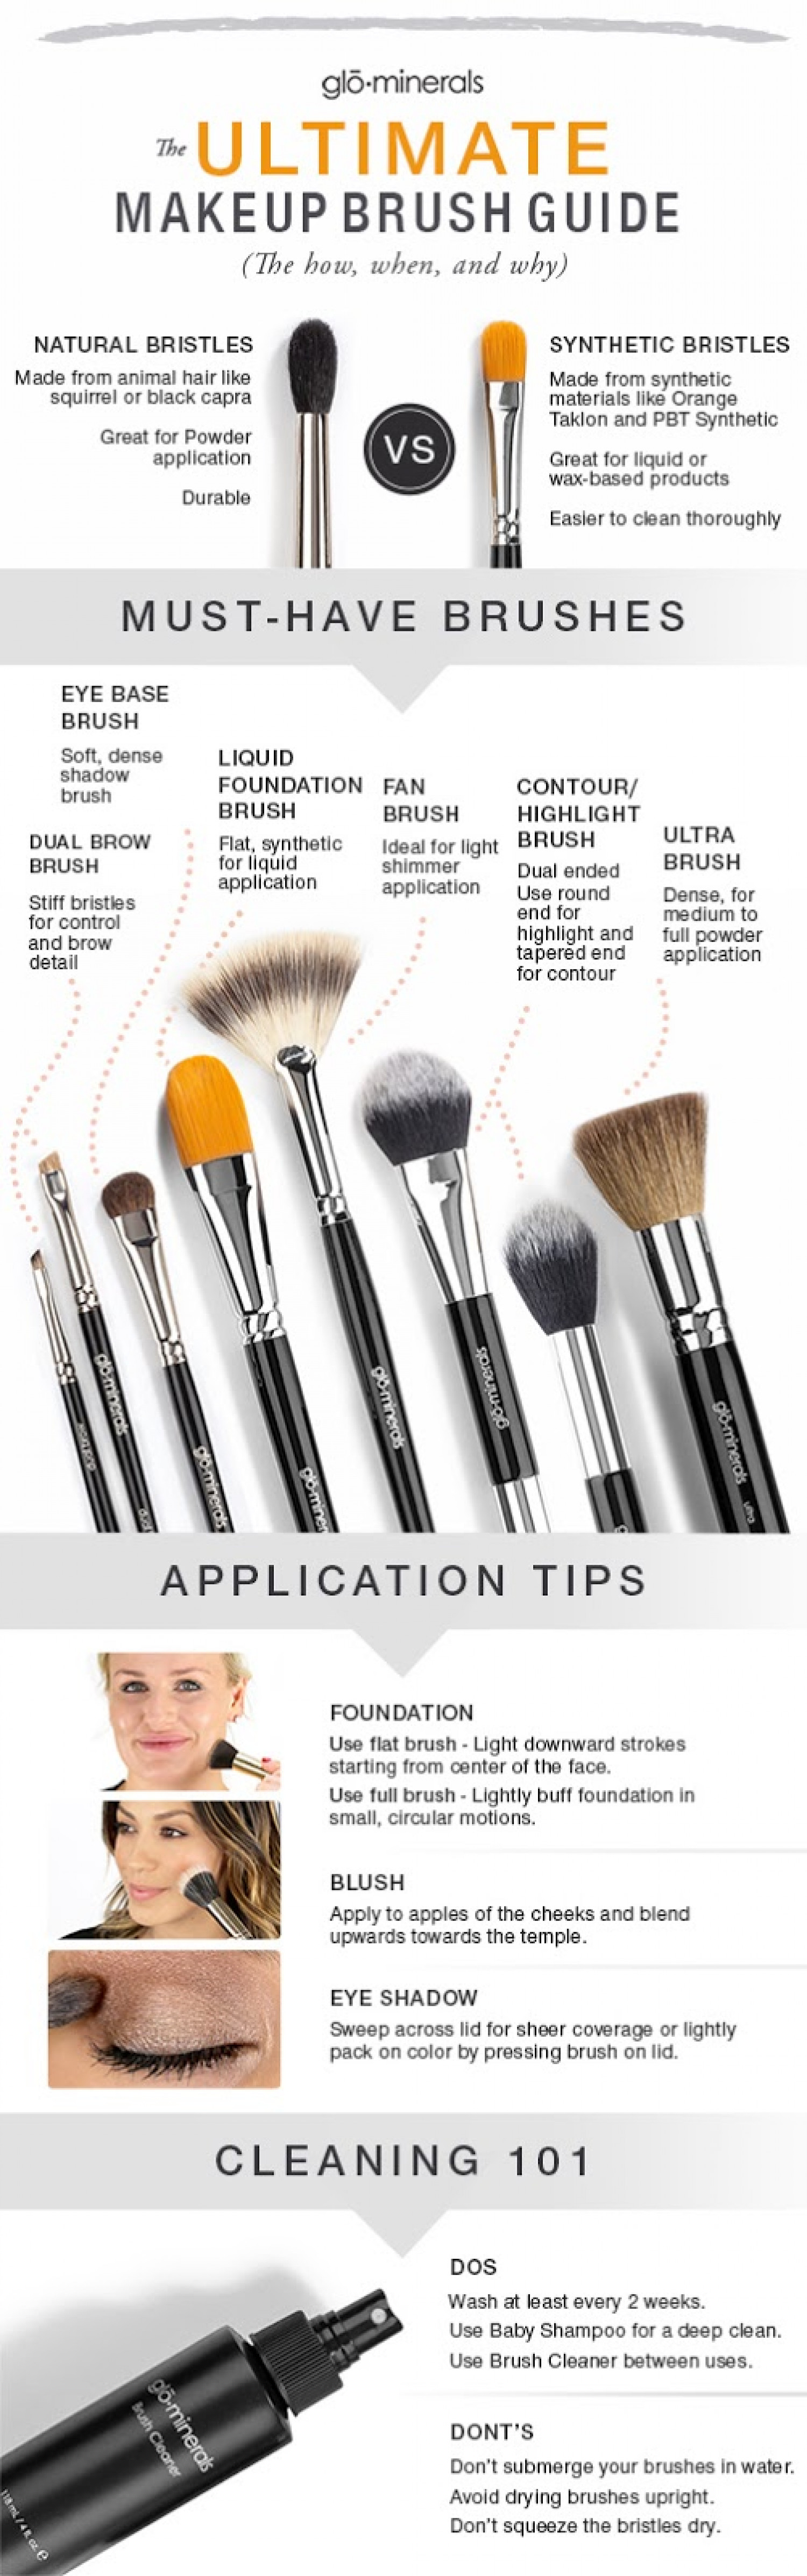 The Ultimate Makeup Brush Guide Infographic